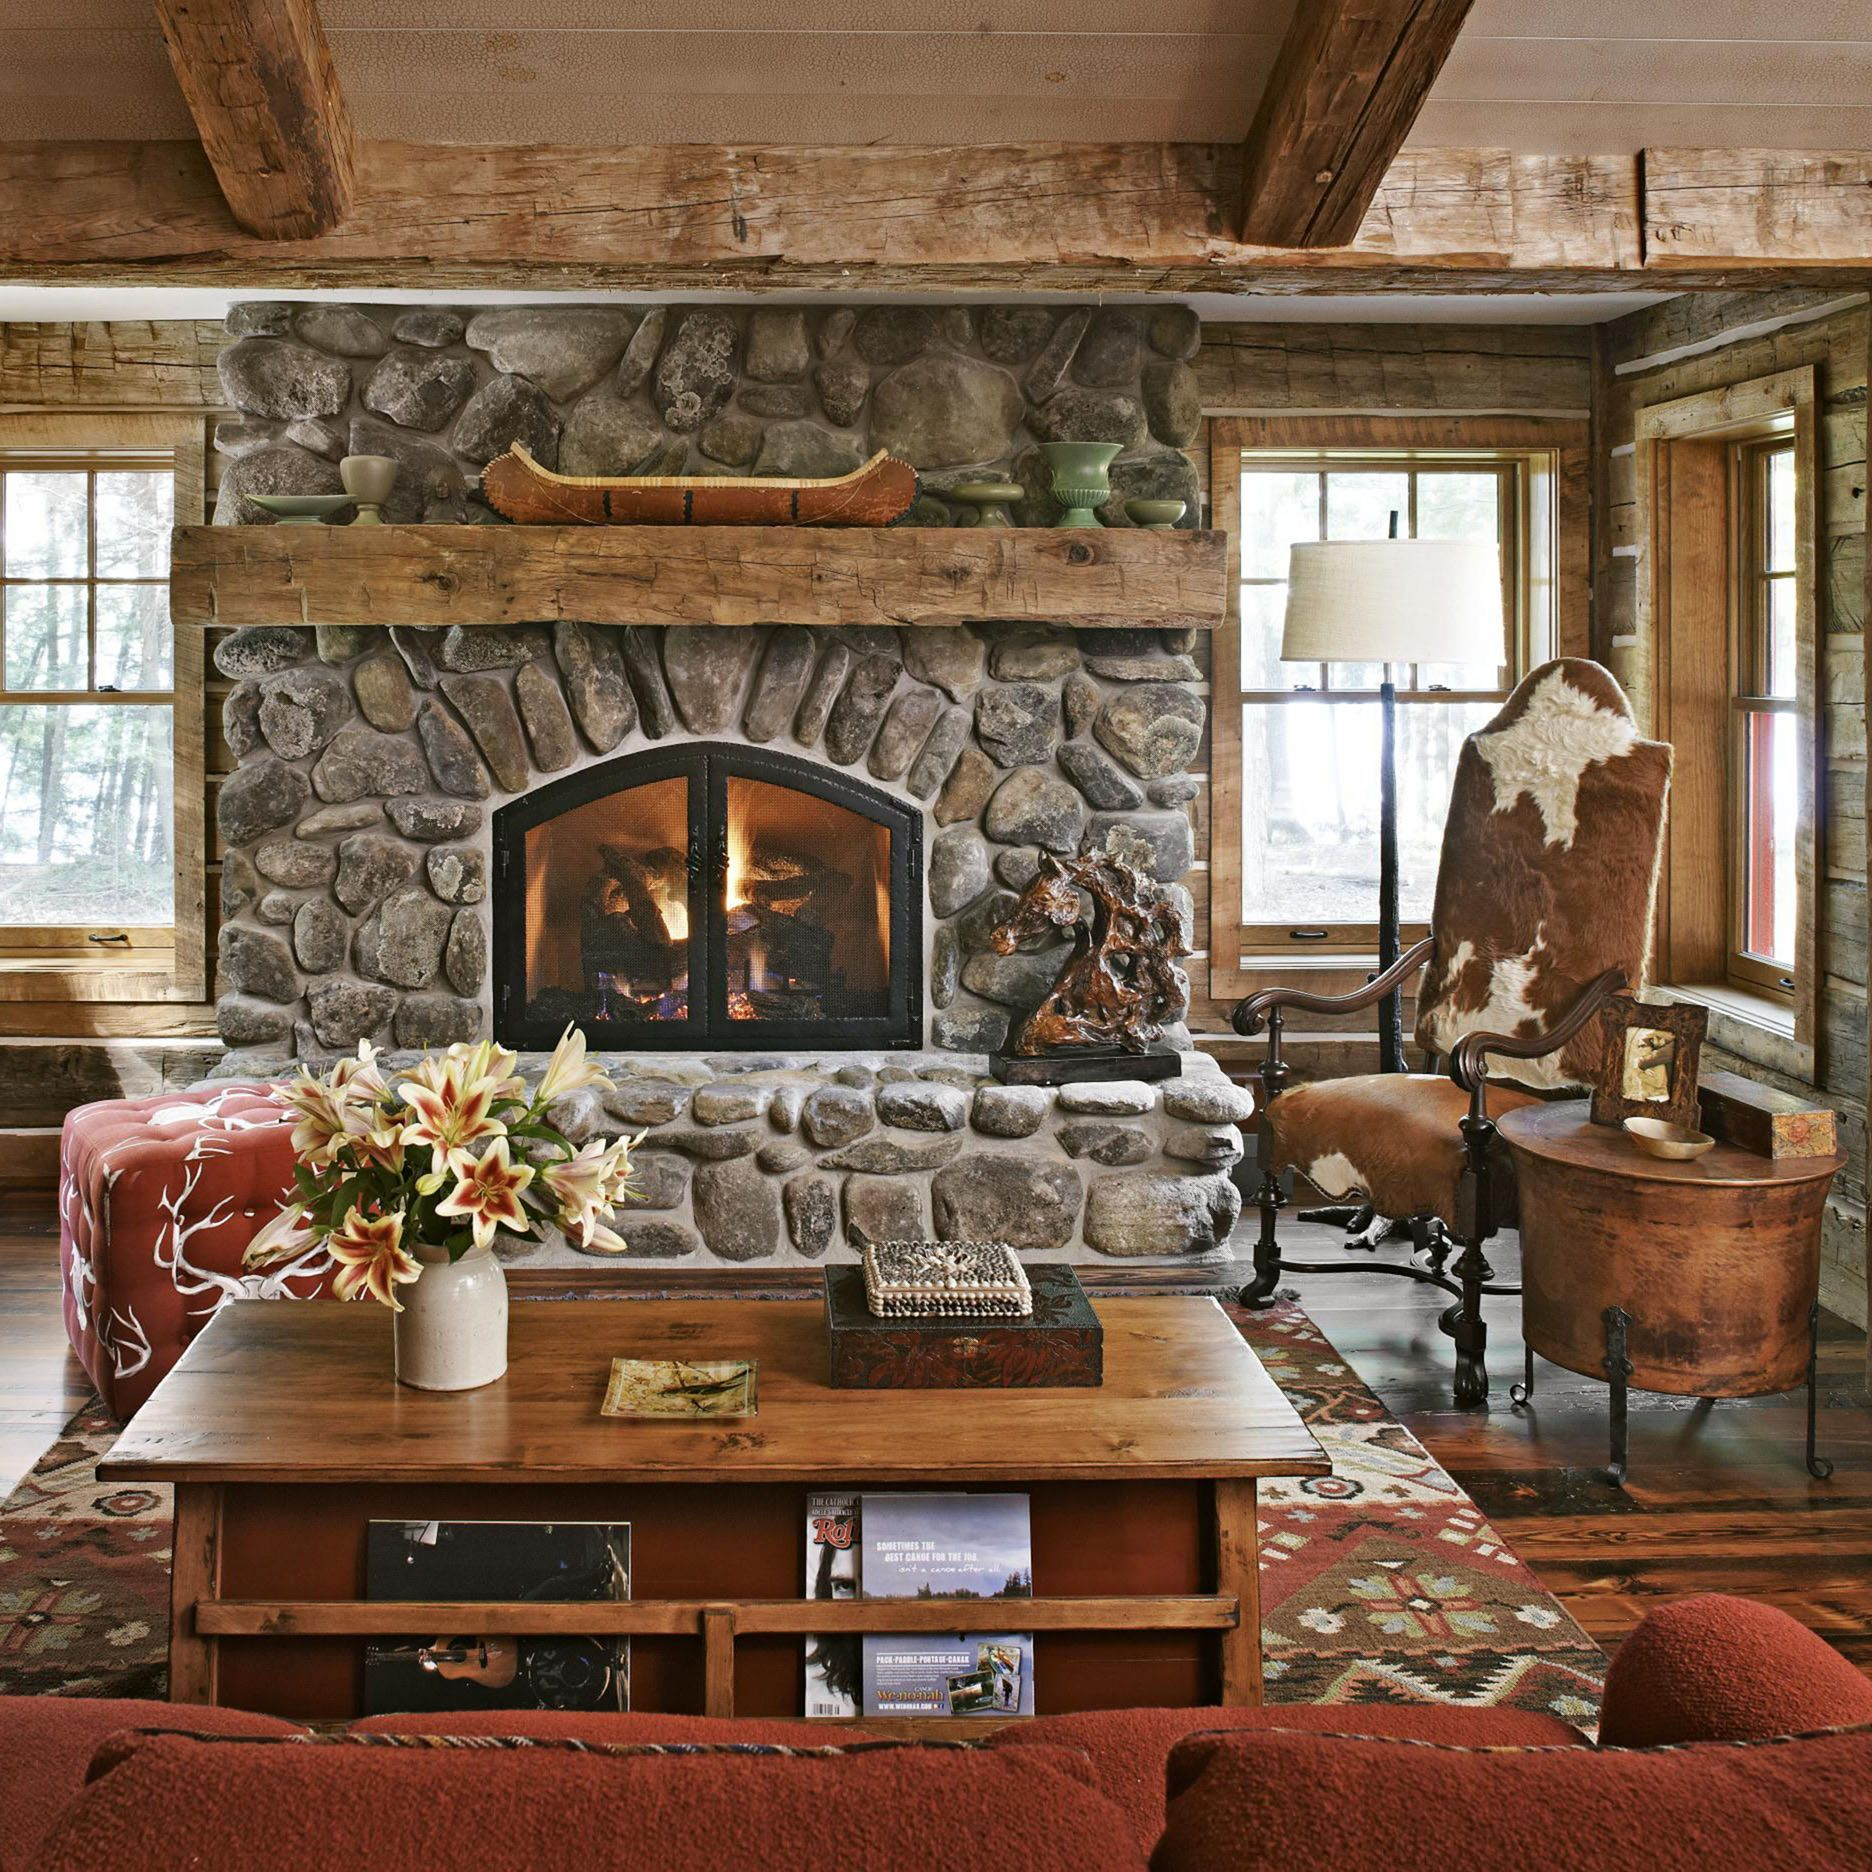 25+ Amazing Rustic Fireplace Design Ideas For Cozy Winter